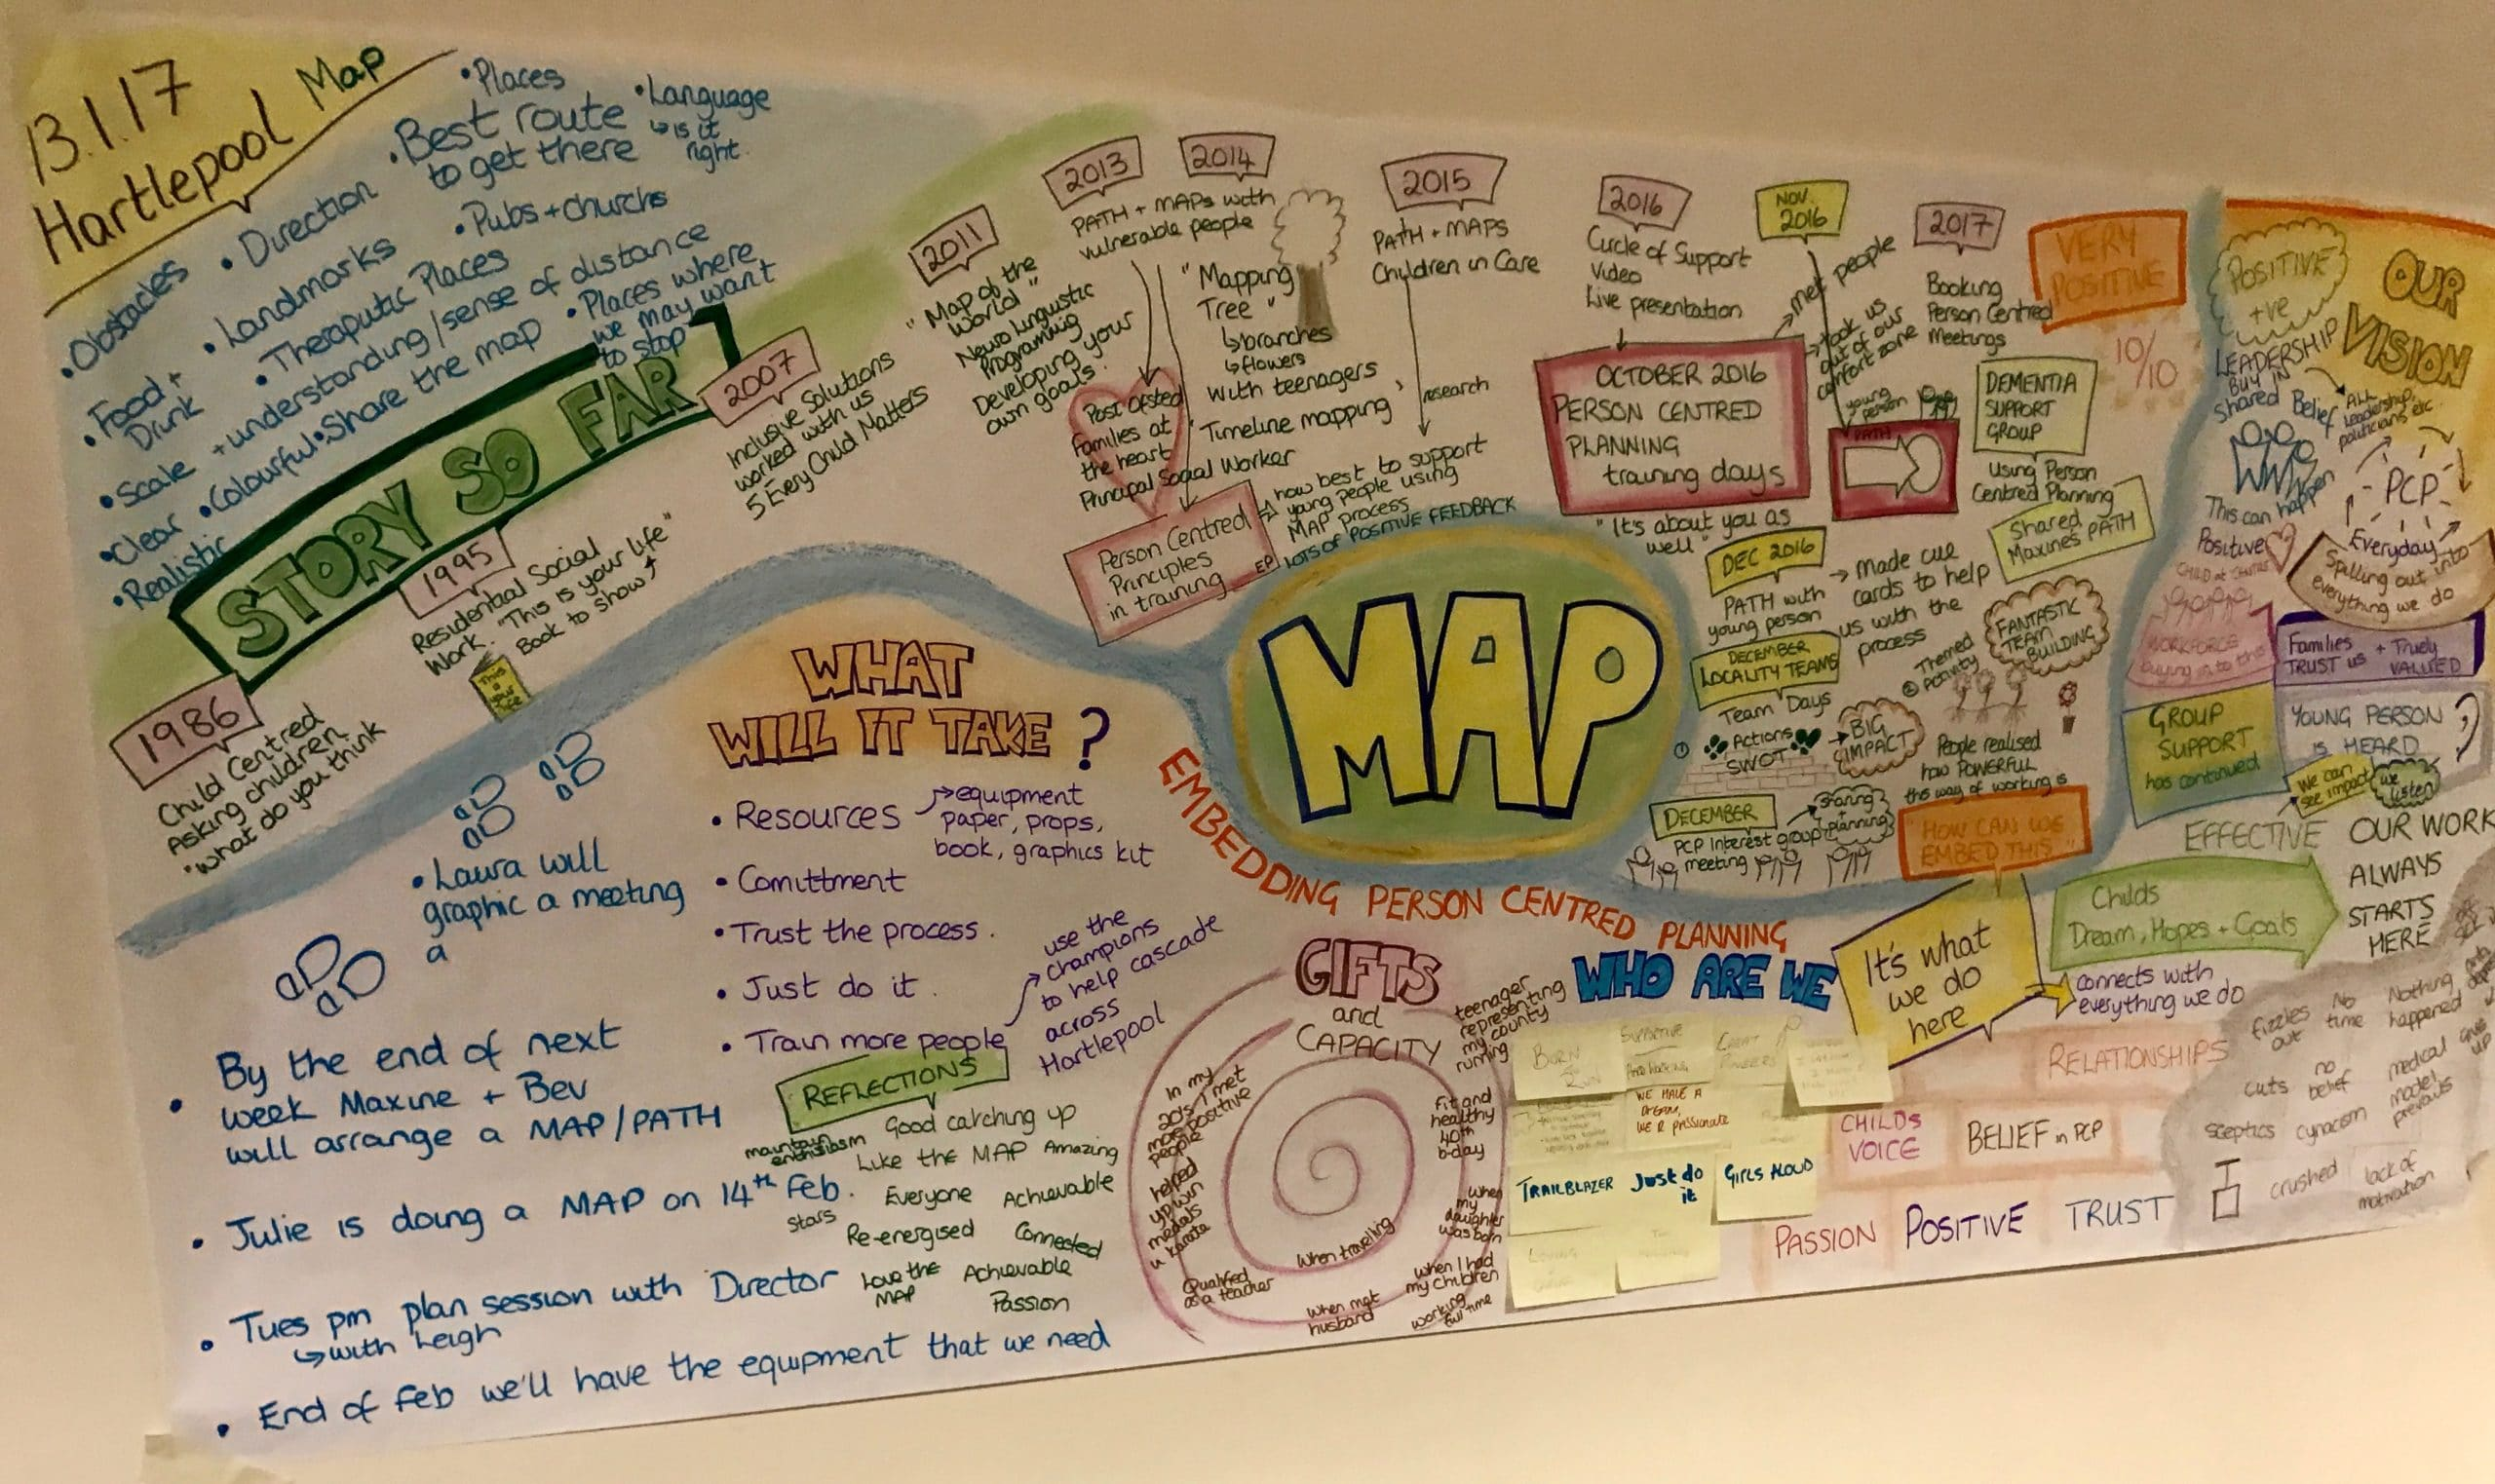 Hartlepool Person Centered Planning work done through MAP process.